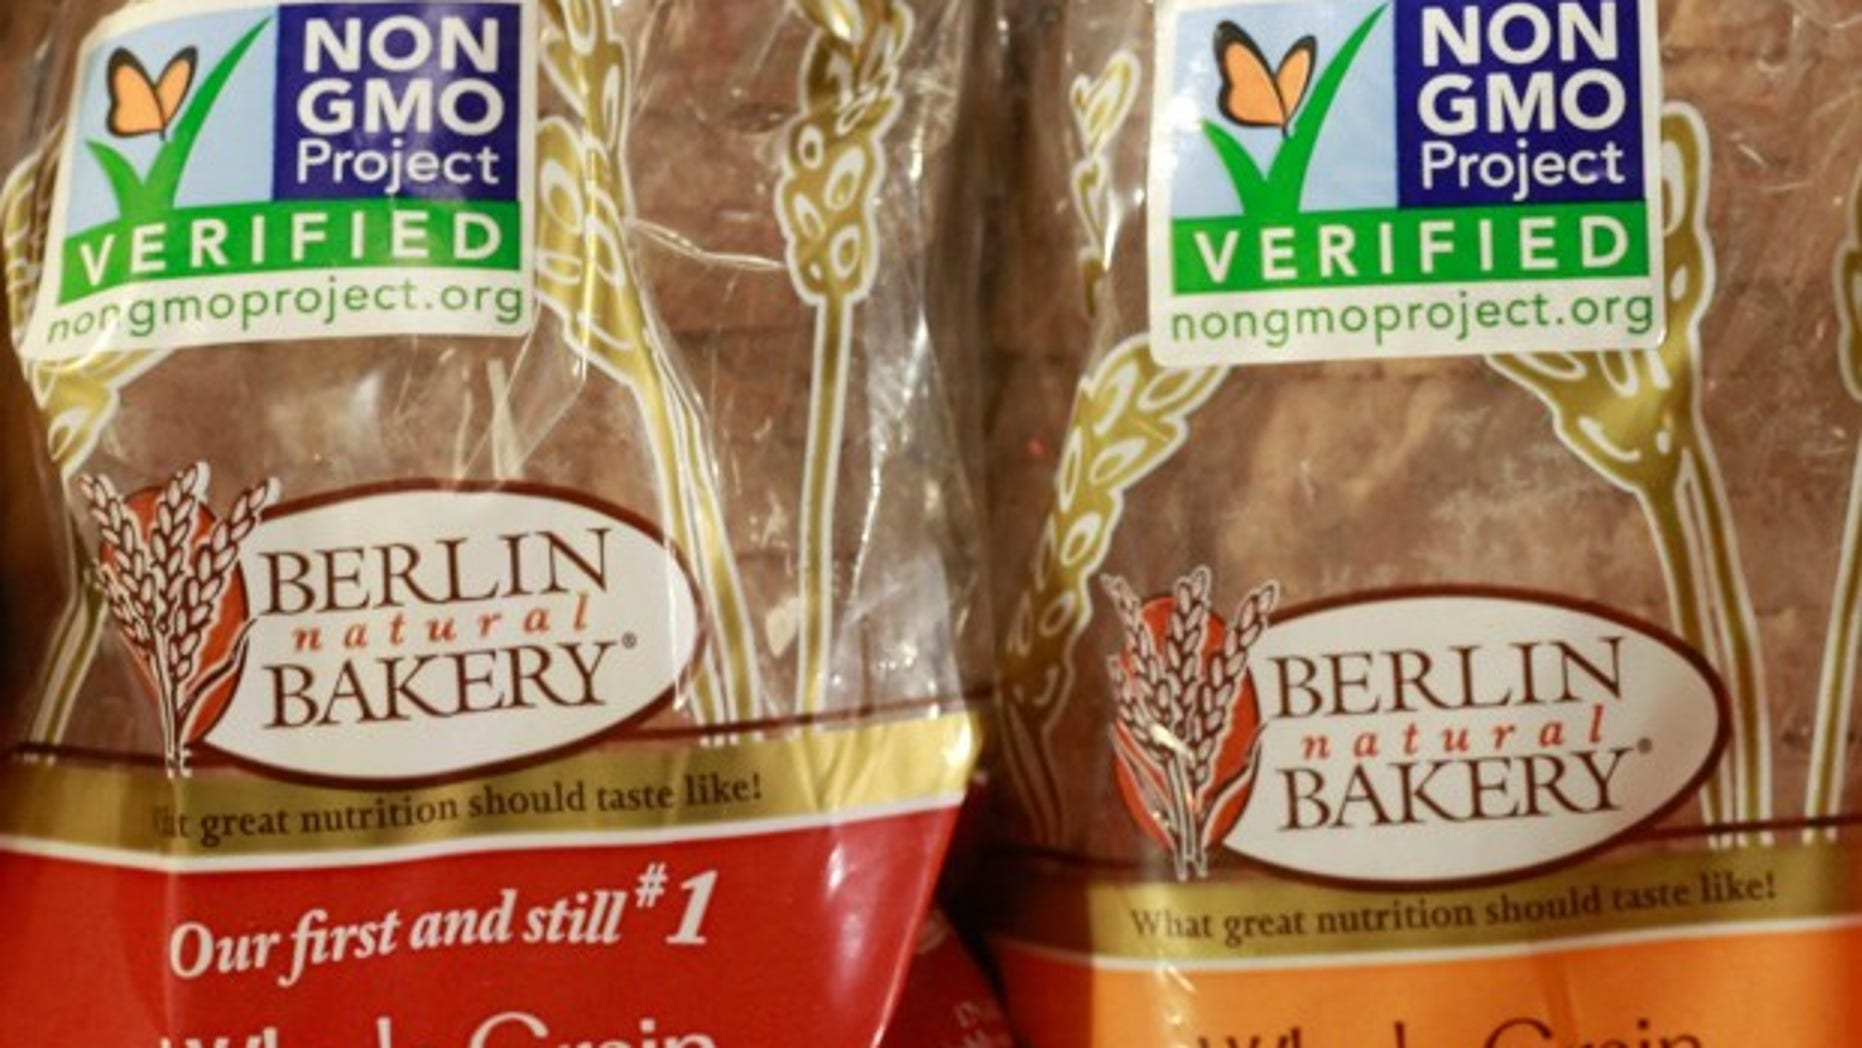 The GMO food labeling debate is much more complicated than a sticker.